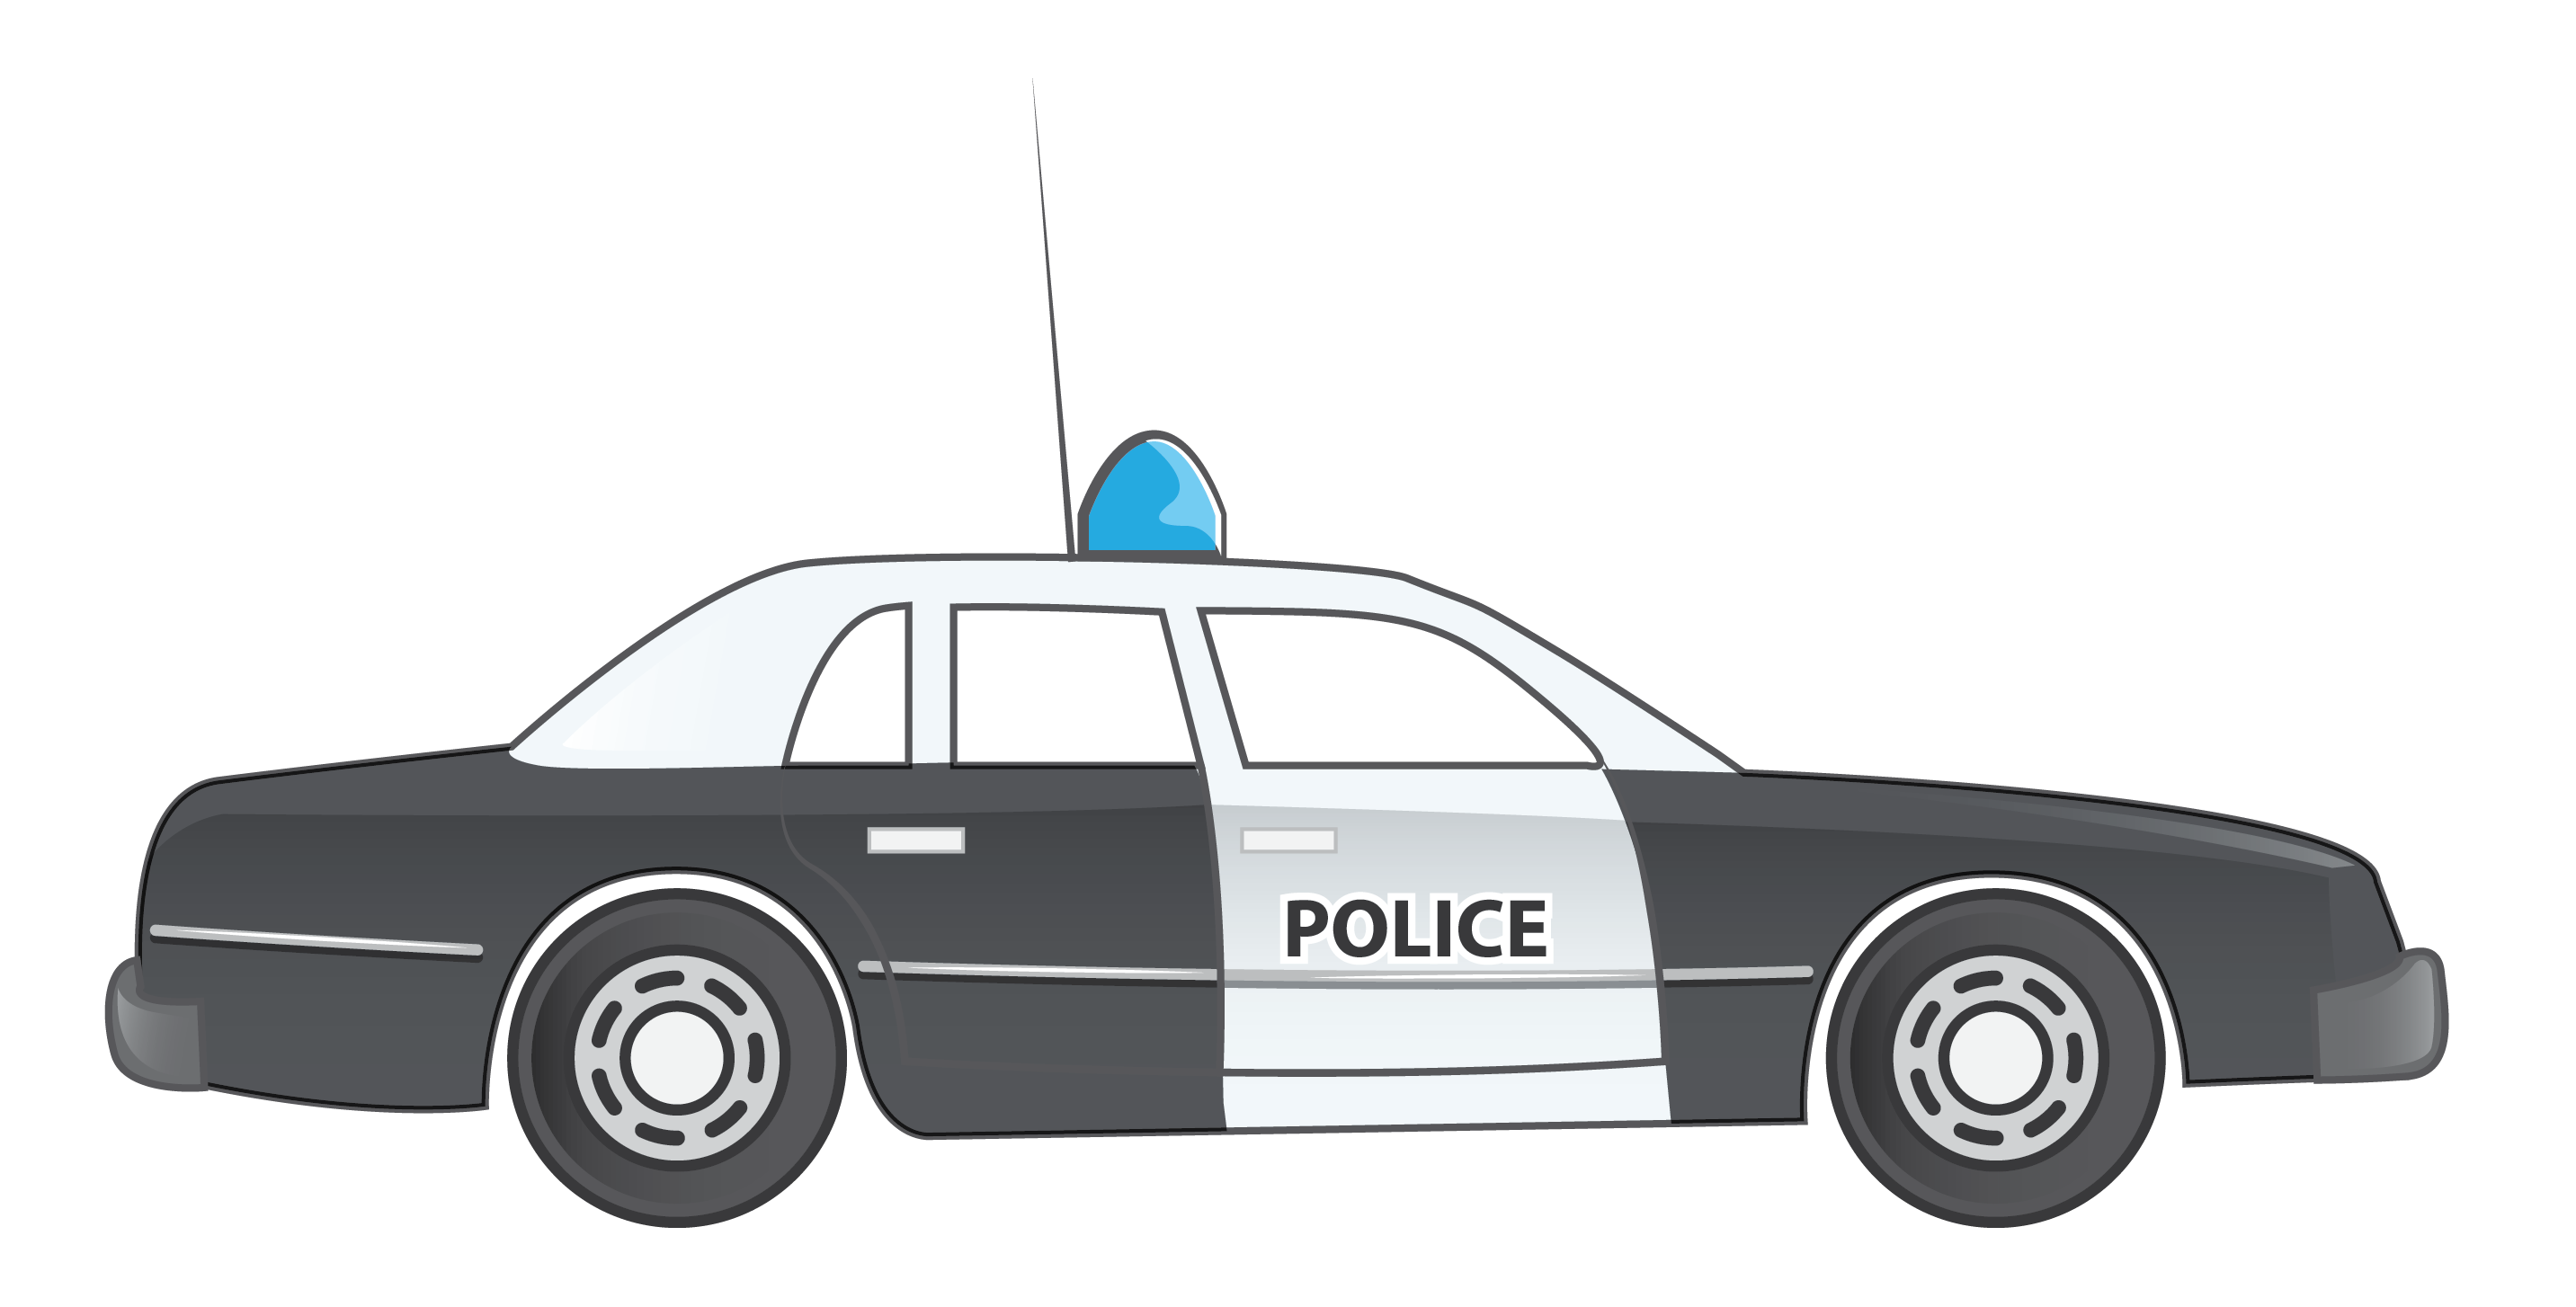 Clipart for police car free Police Car Clipart Png | Letters Format free